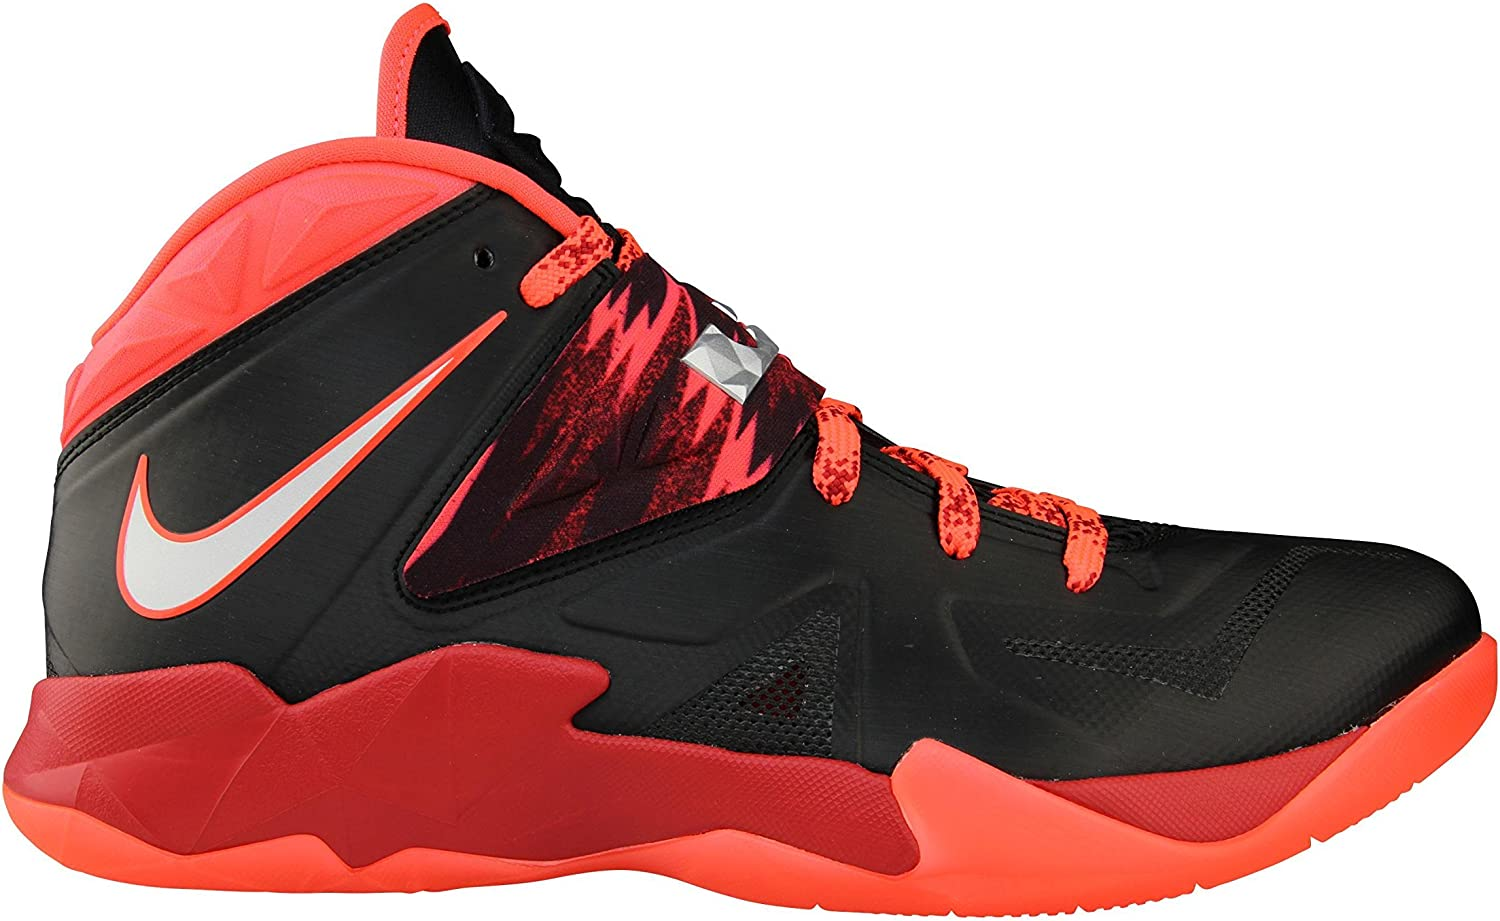 Charles Keasing Londres Volcán  Amazon.com | Nike Men's Lebron Zoom Soldier VII PP Basketball Shoes  Black/Metallic Silver/Gym Red/Bright Crimson 609679-005 (10) | Shoes